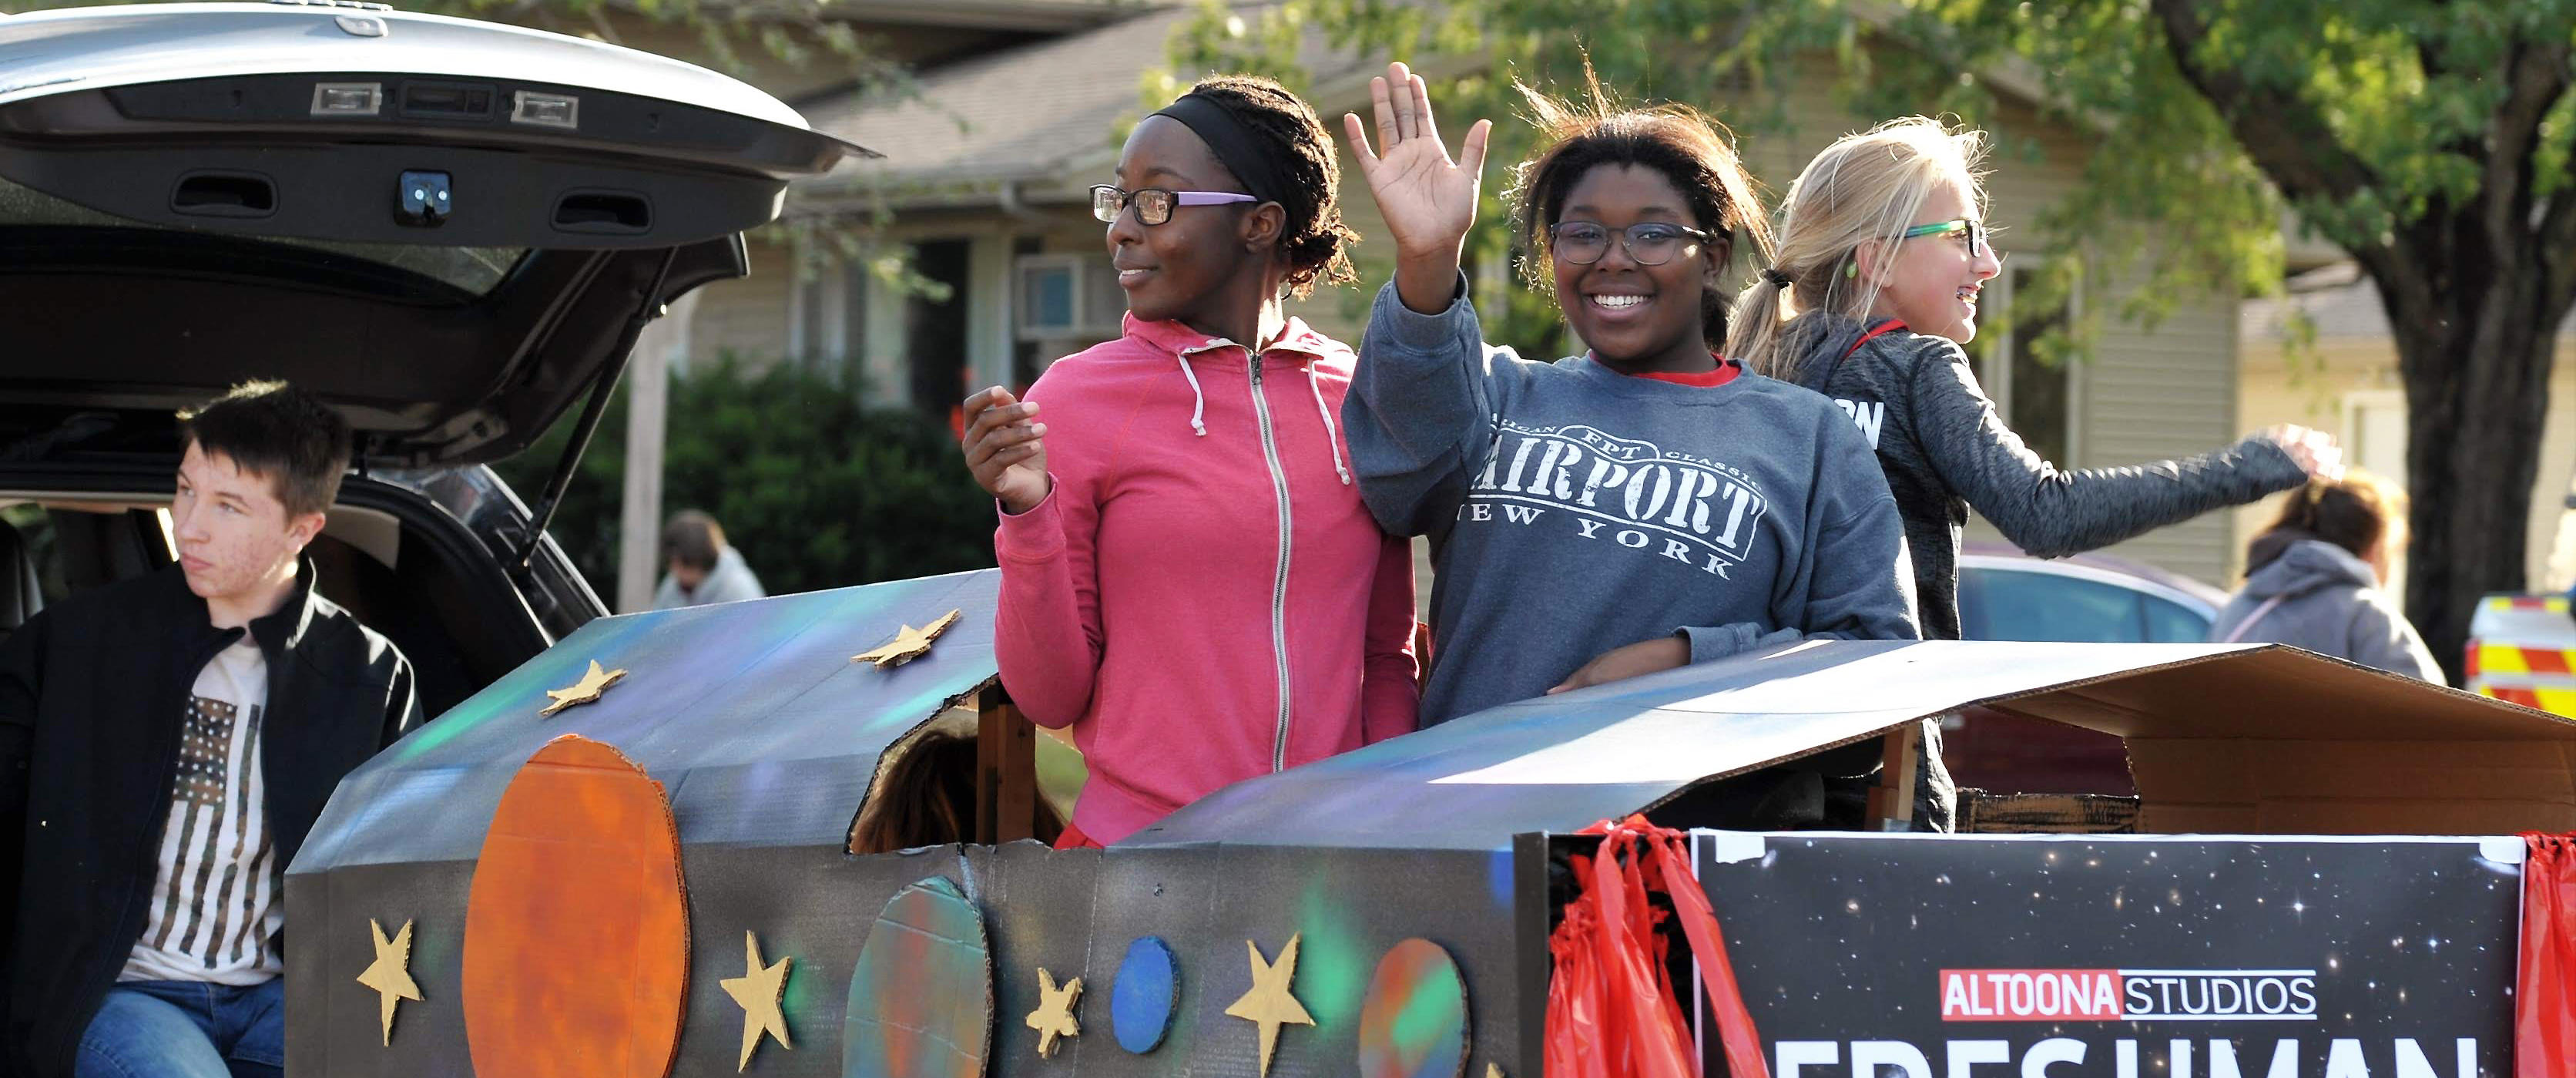 High School Students at Homecoming Parade